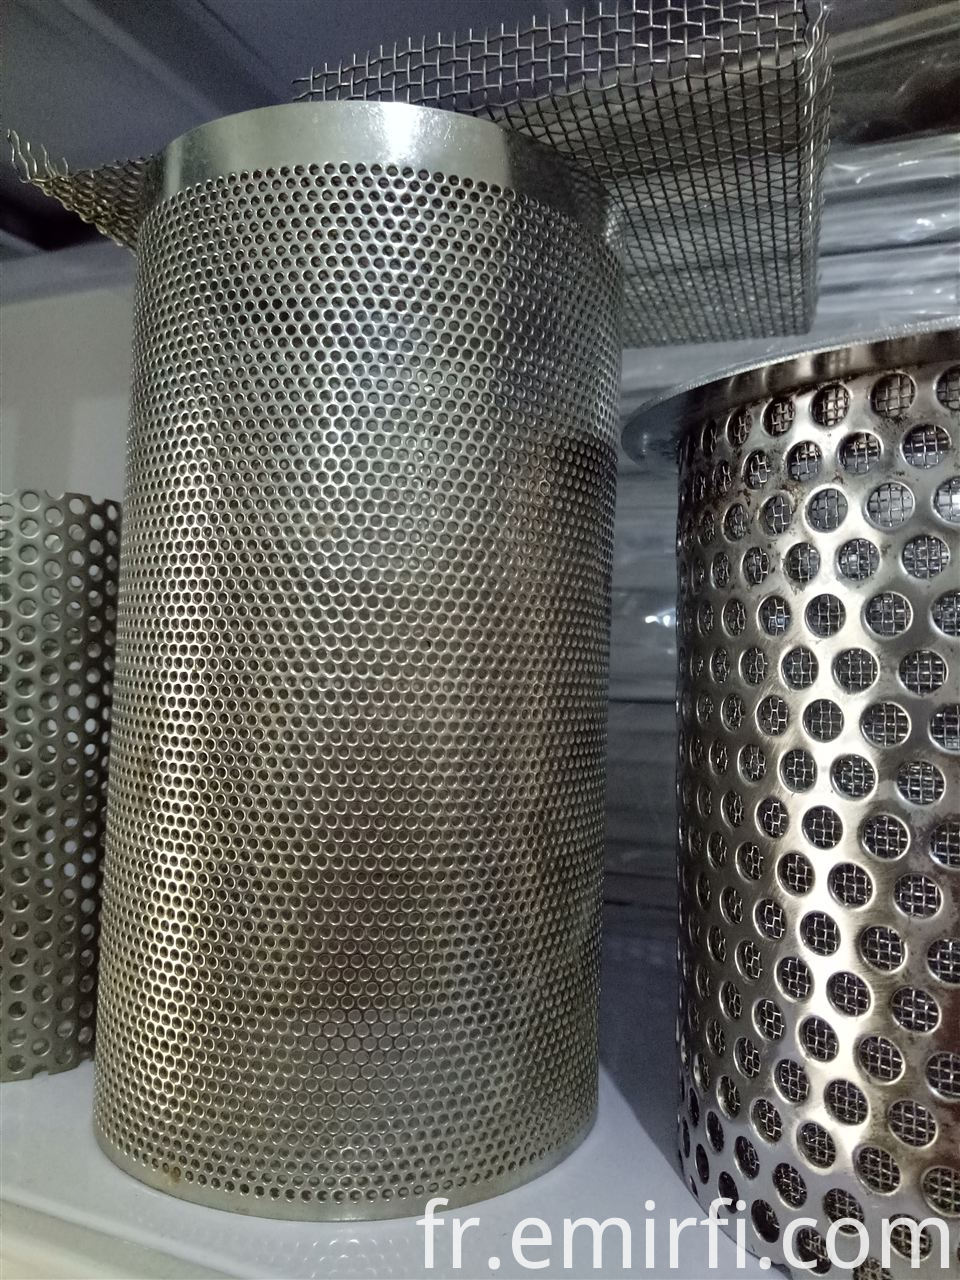 stainless steel etched mesh